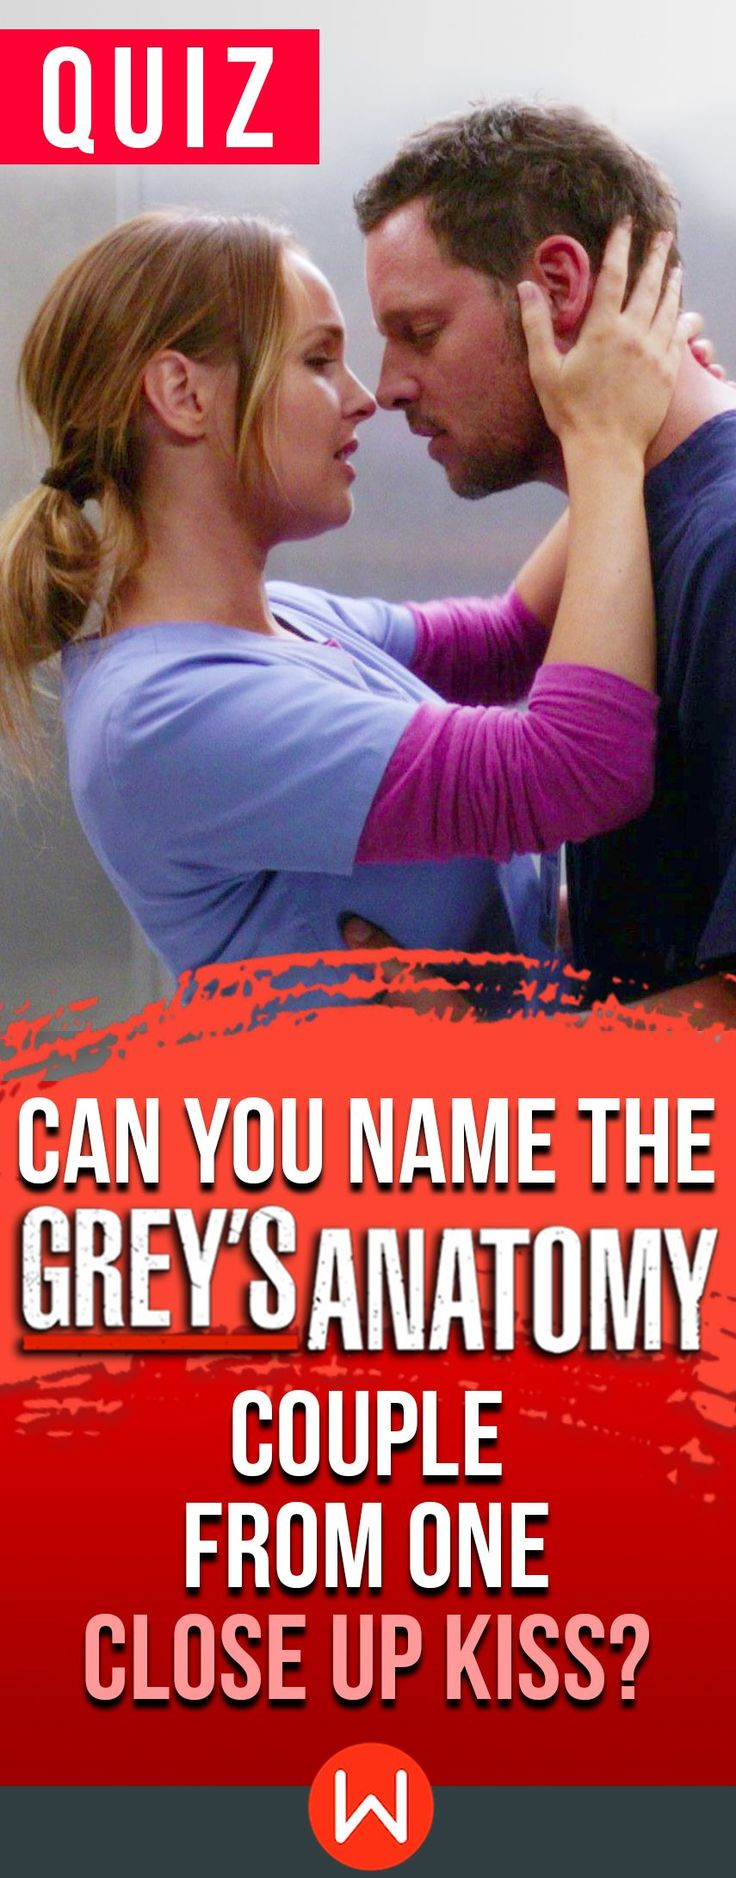 Grey's Anatomy quiz: Can you name the Grey's couple JUST from a close up kiss? Grey's love. Greys Anatomy kisses, Grey's romance quiz, Jolex, Japril, Merder... Grey's Anatomy trivia test, buzzfeed quizzes. Can you tell who is lip locking in these close-ups?